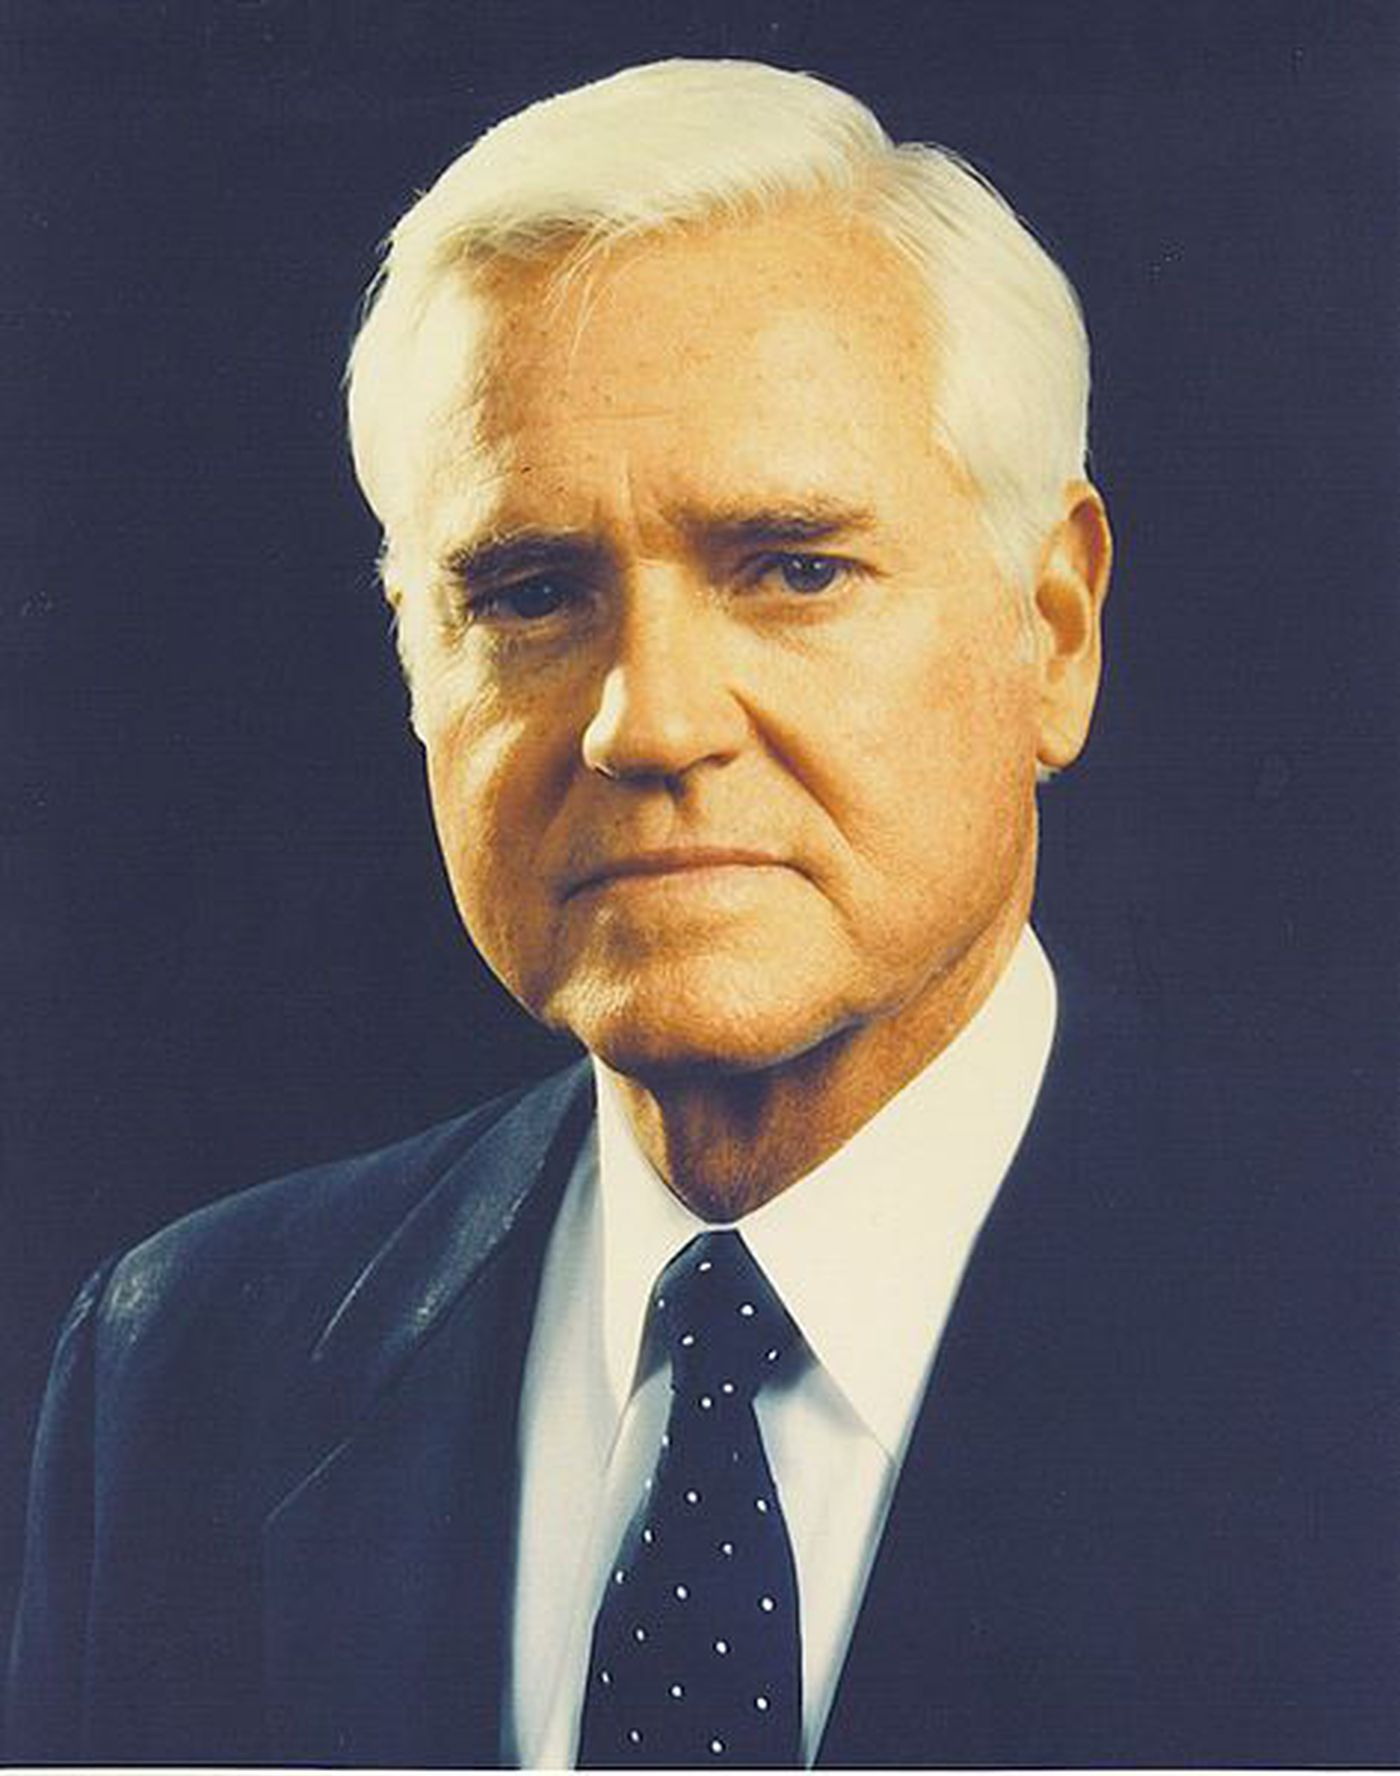 Sen. Ernest 'Fritz' Hollings (Source: U.S. Congress)